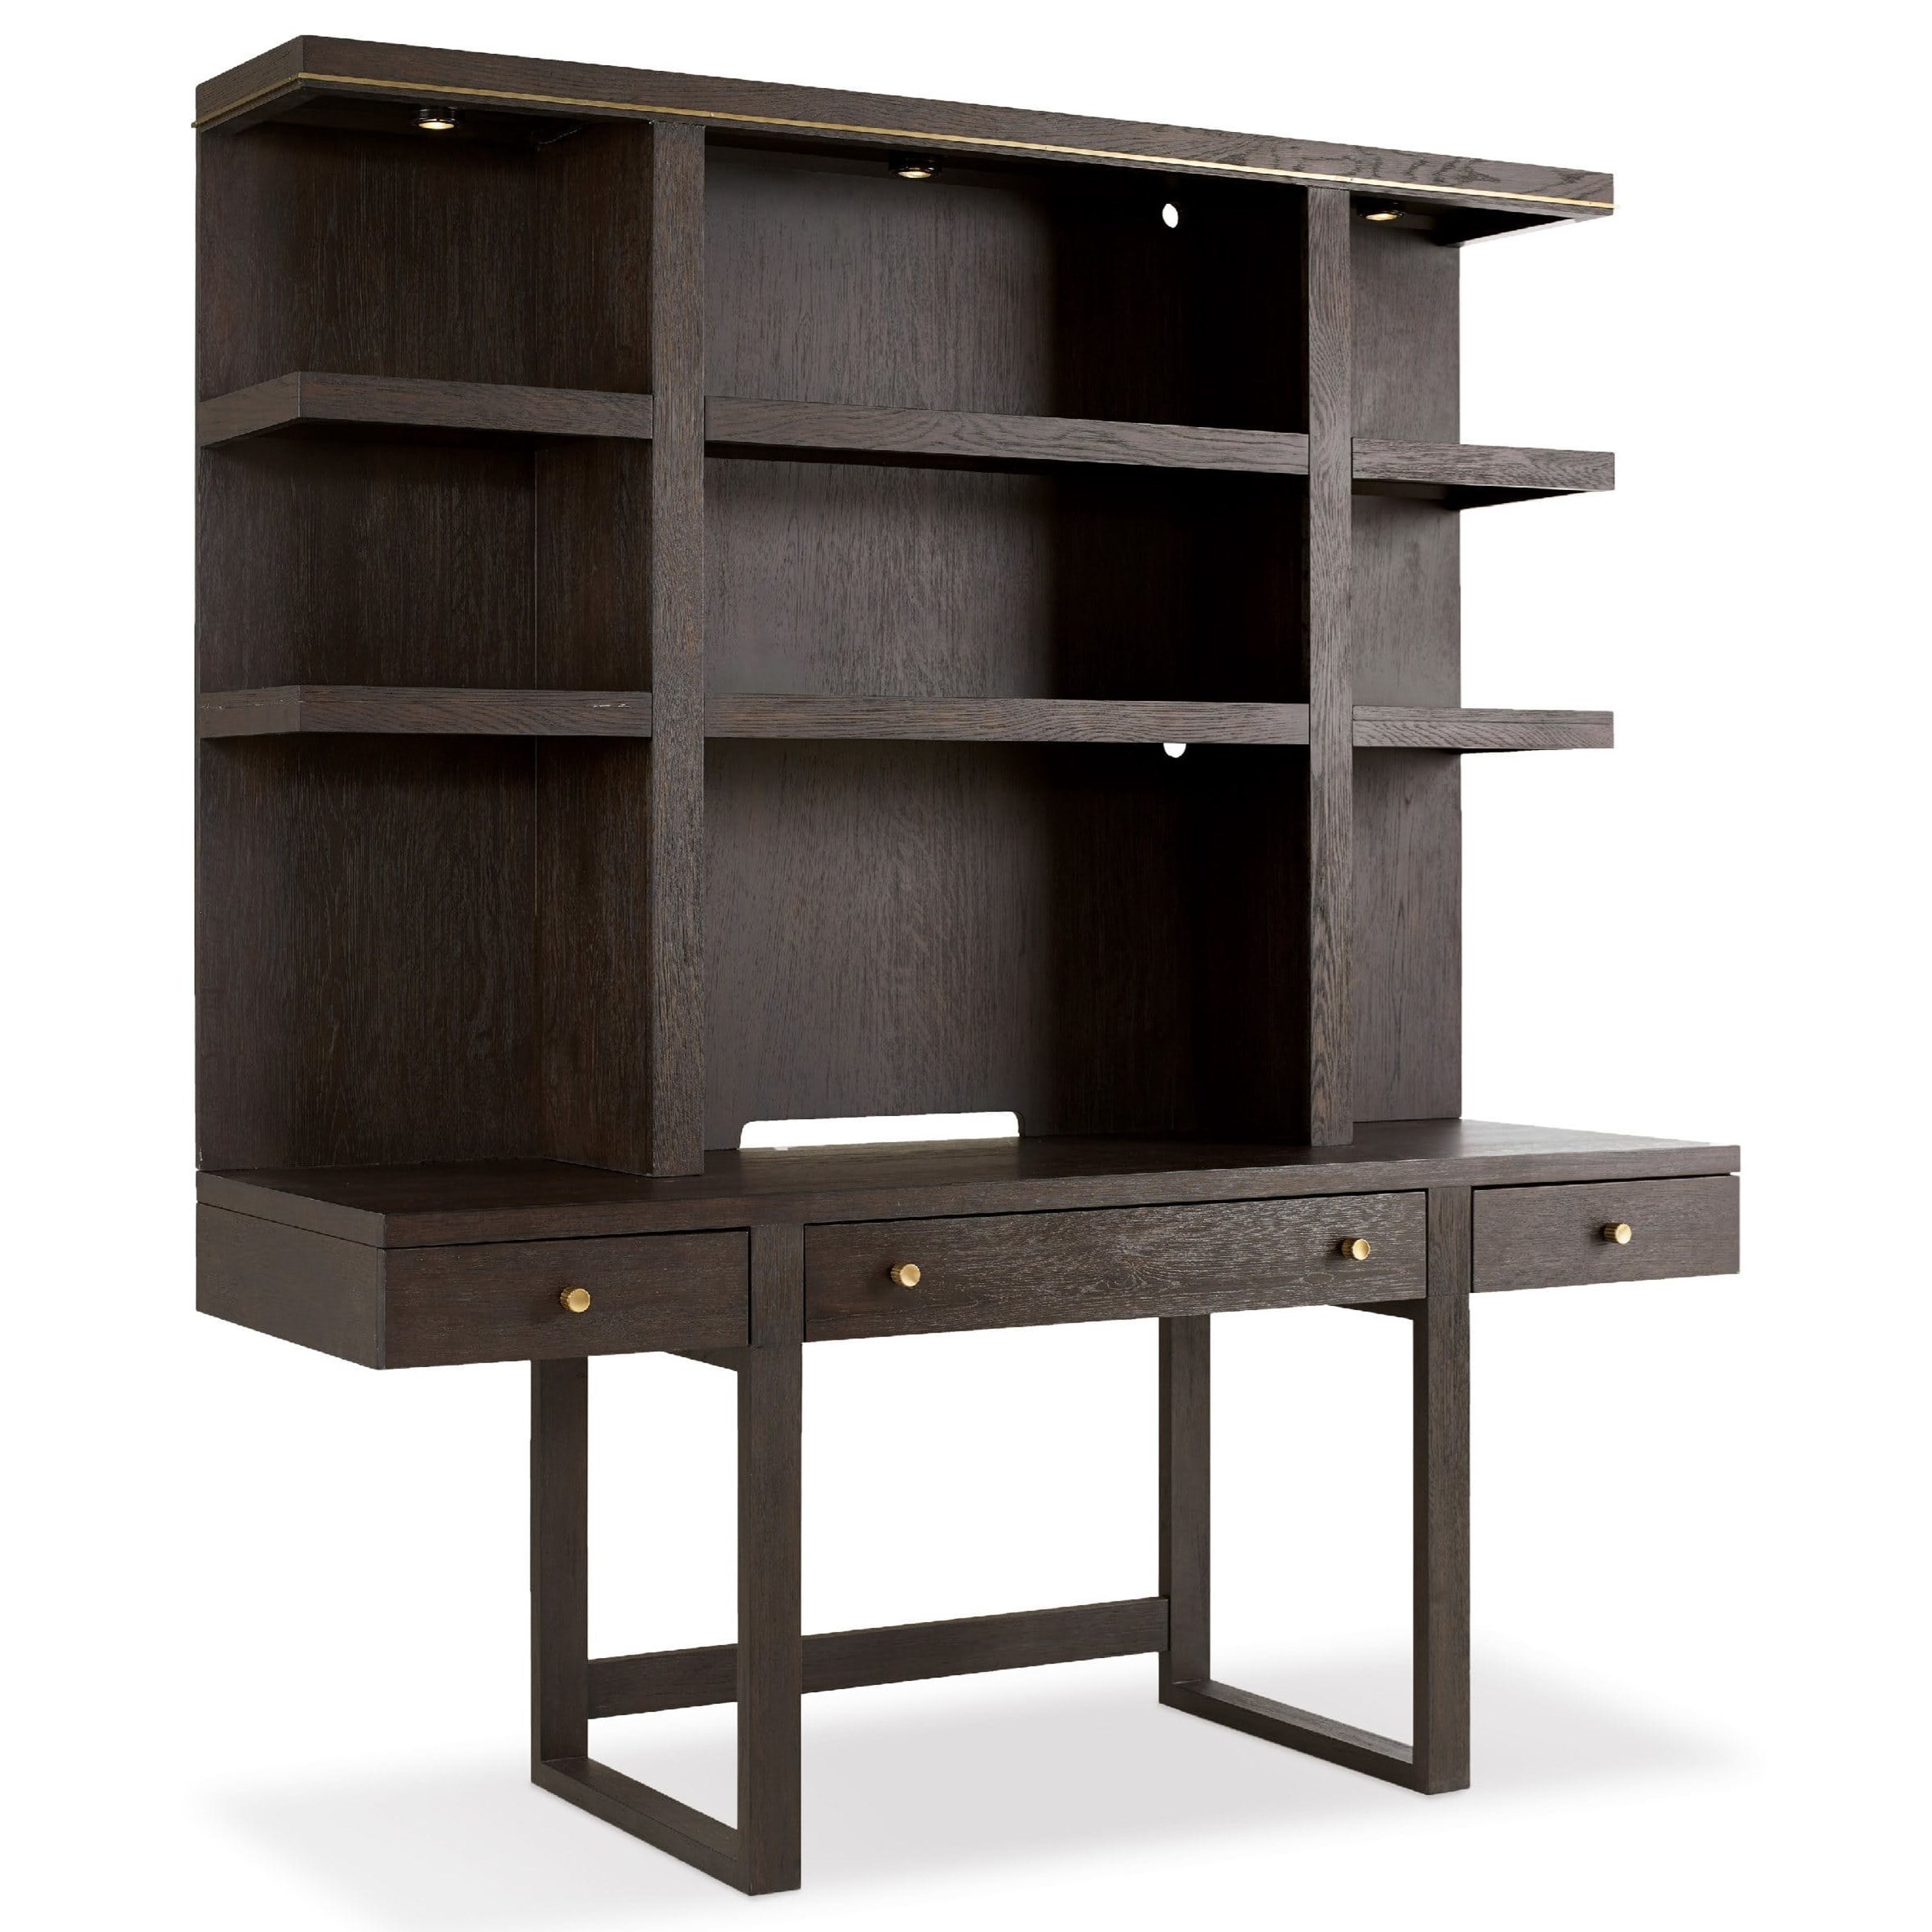 Curata Wall Desk with Hutch by Hooker Furniture at Stoney Creek Furniture